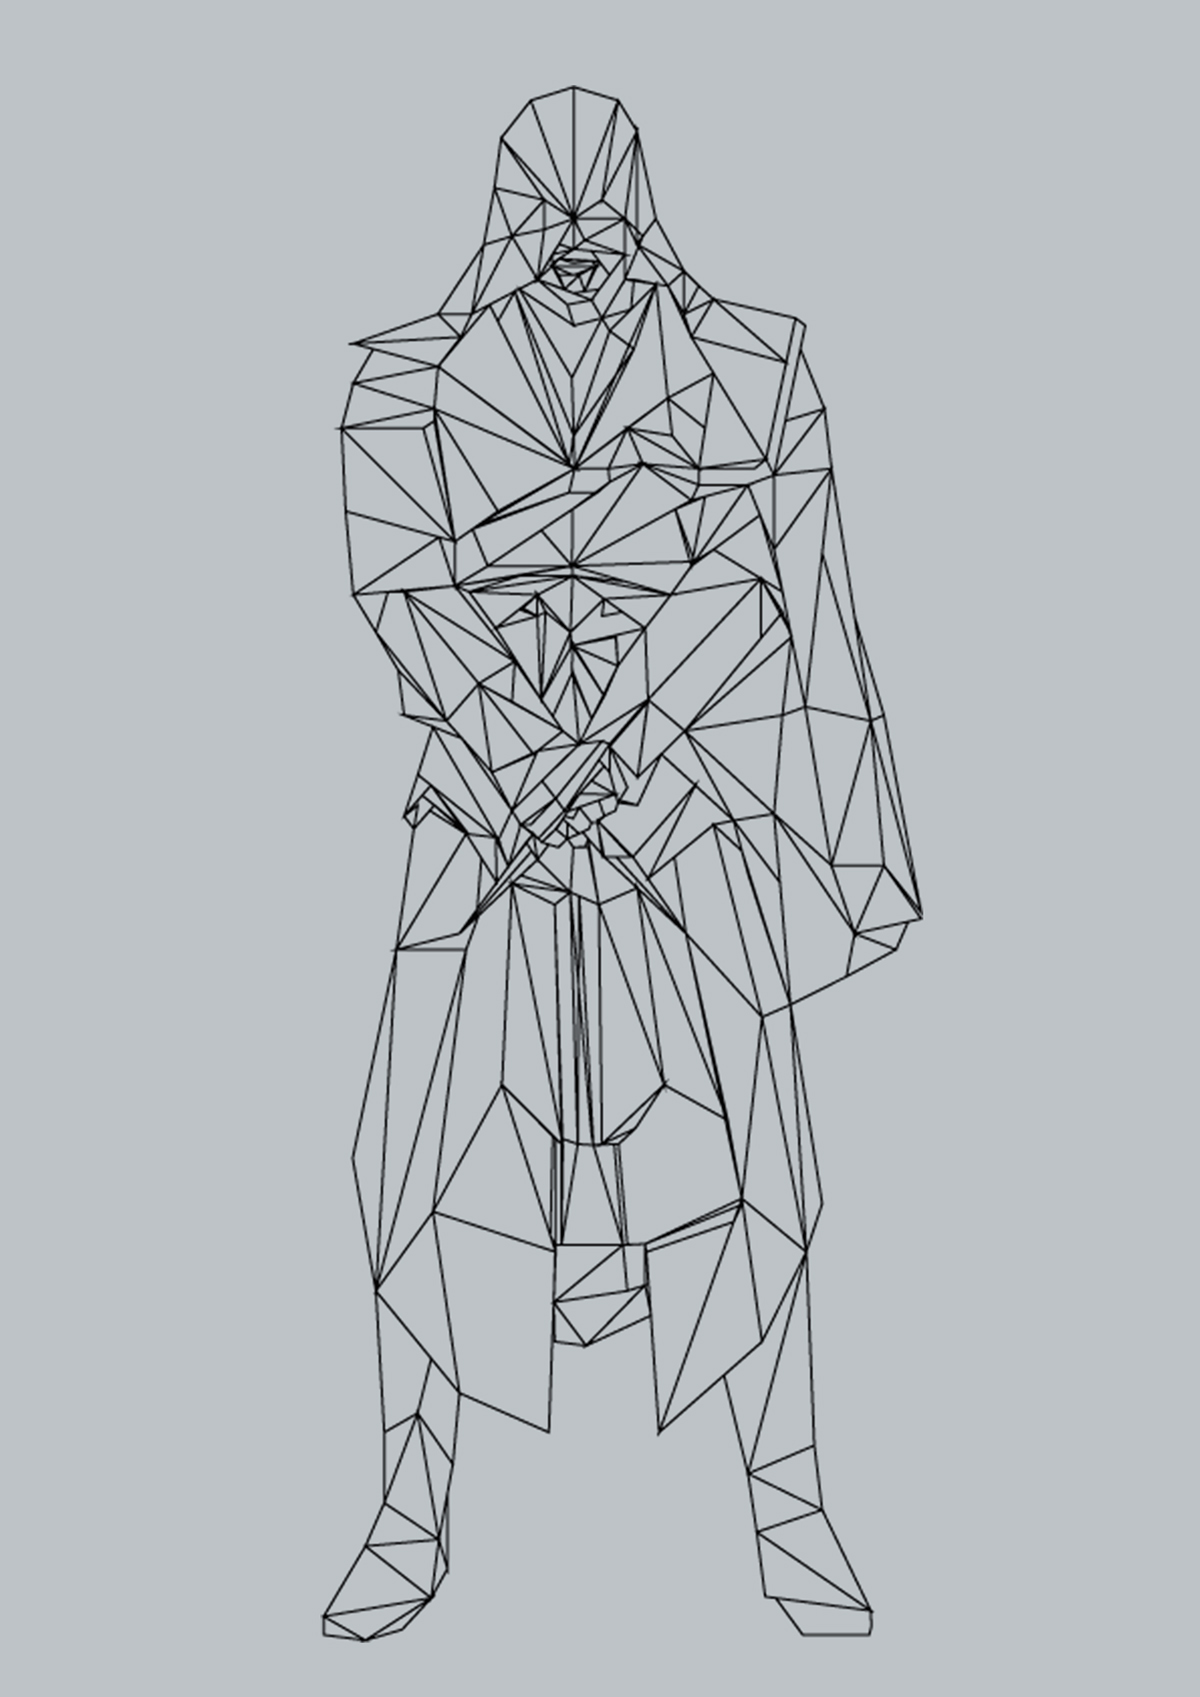 Low Poly Assassins creed flat ezio poly art Low Poly Art poly